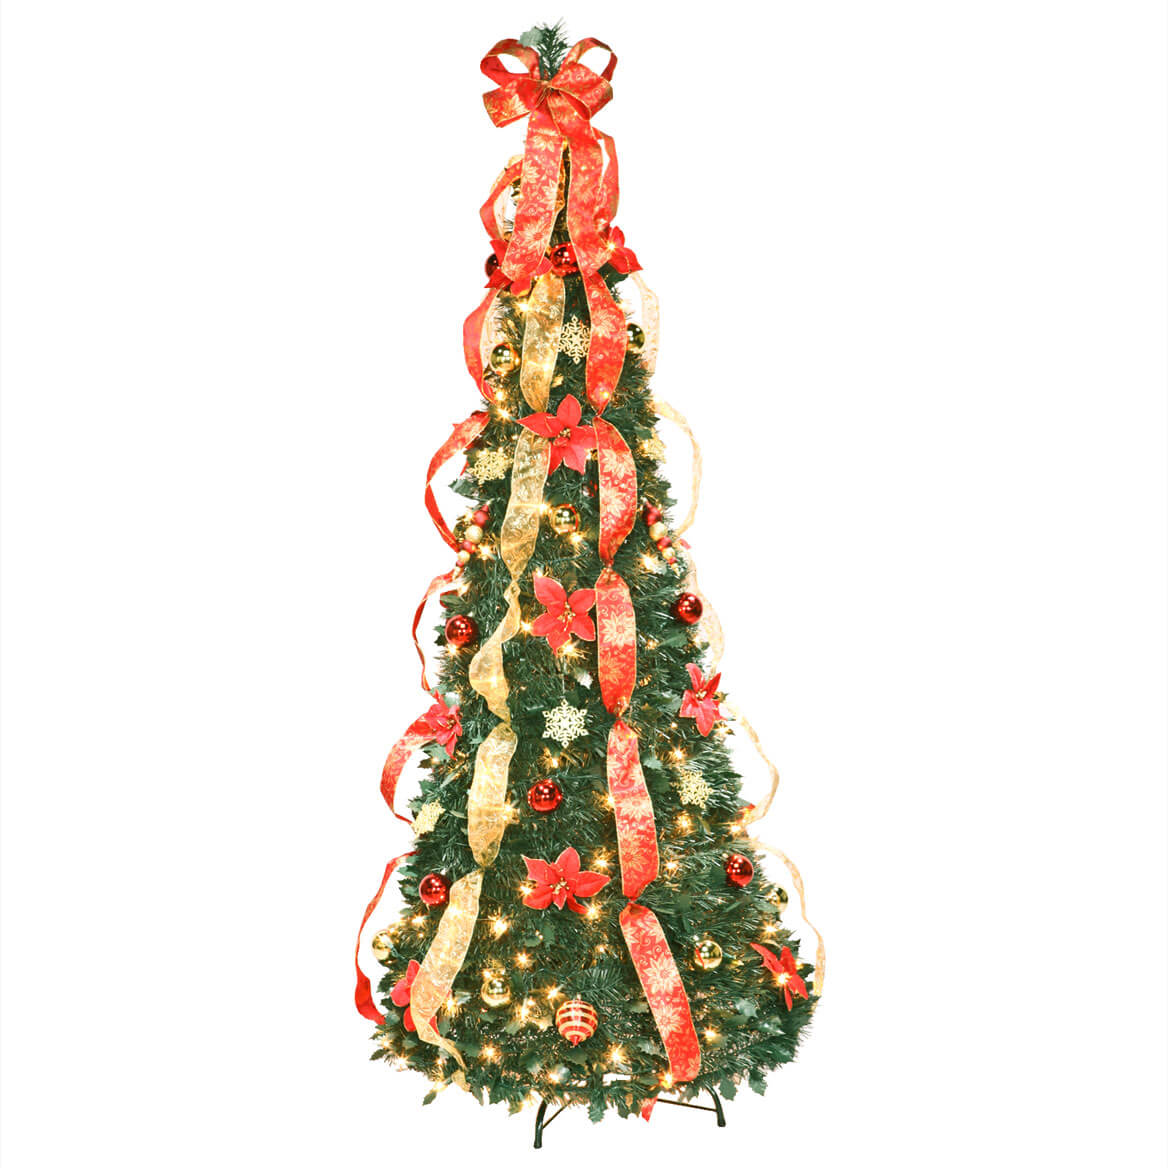 6 ft Fully Decorated Prelit Poinsettia Tree - Walter Drake